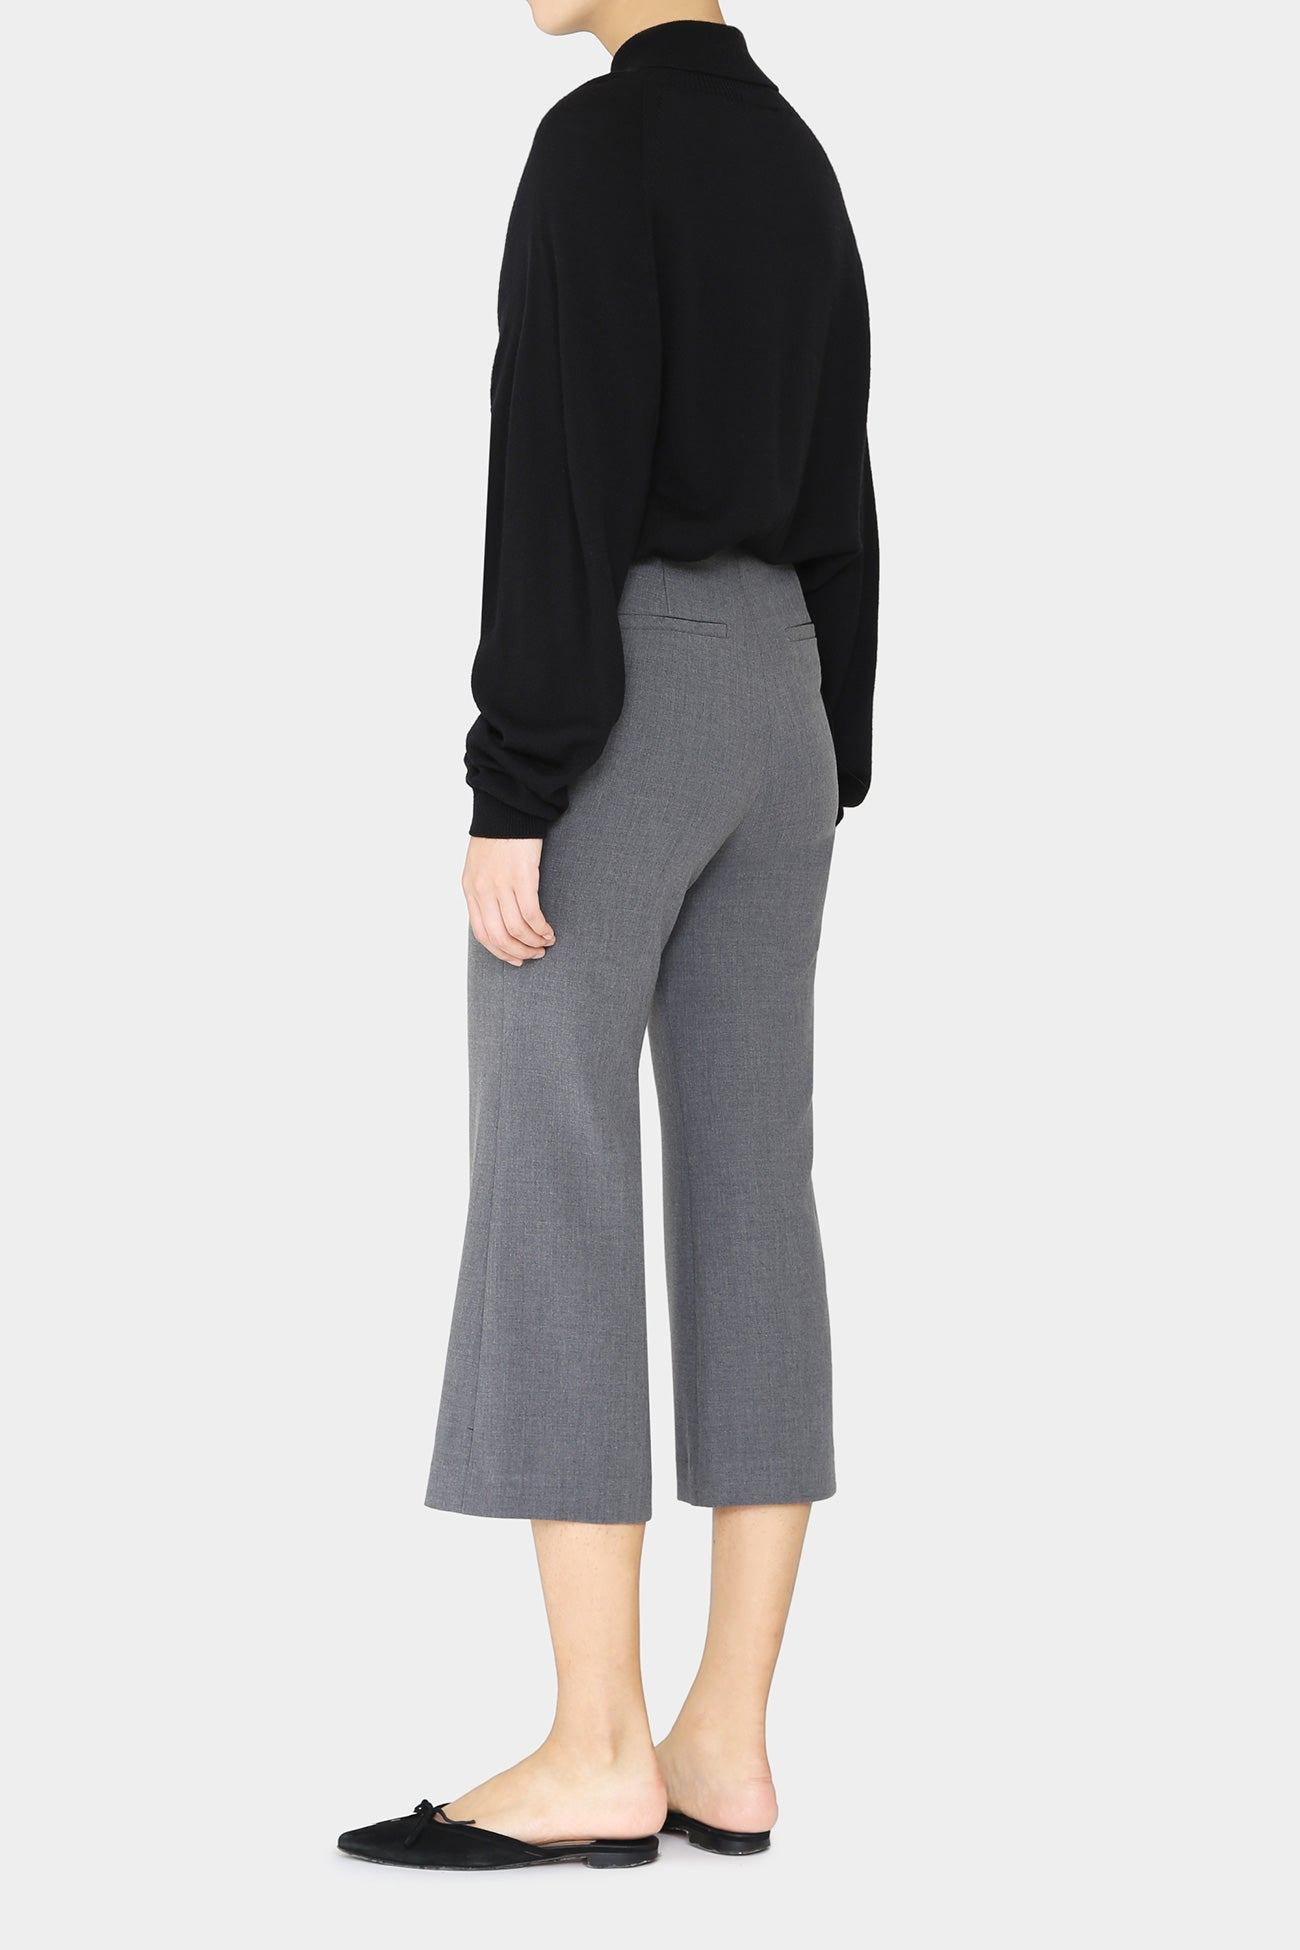 GREY IVY FLARE PANTS